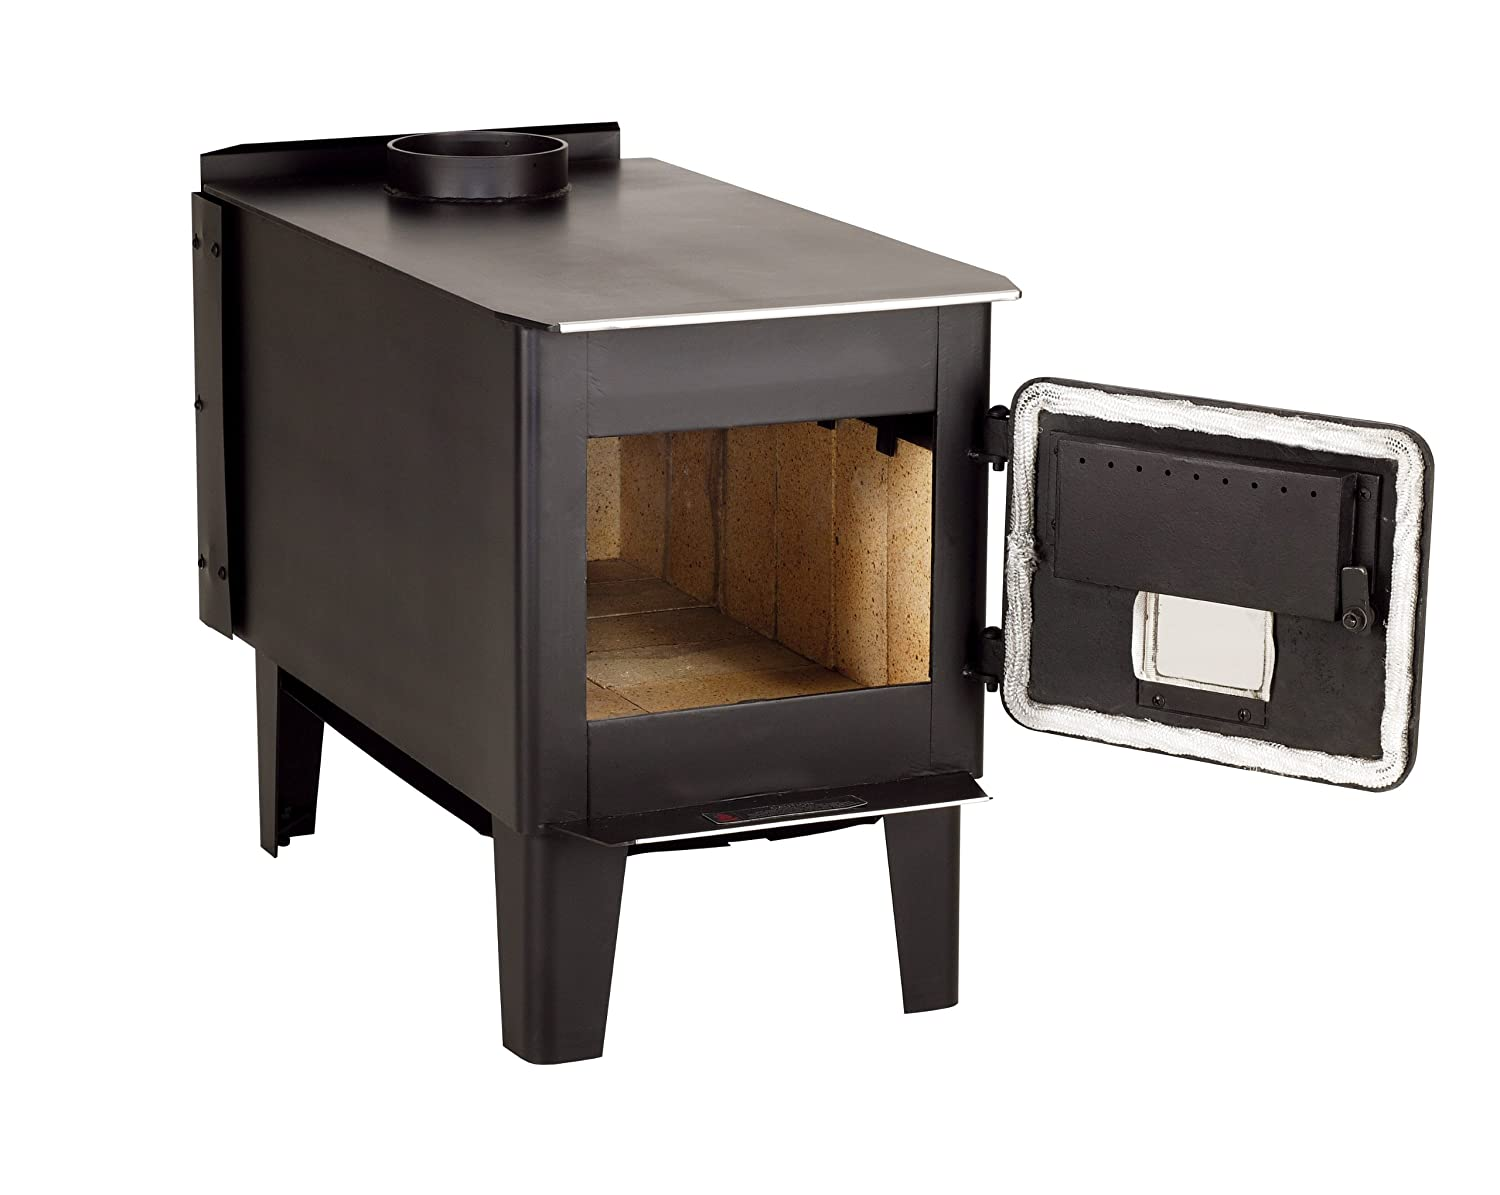 Small Wood Stove For Sale | WB Designs